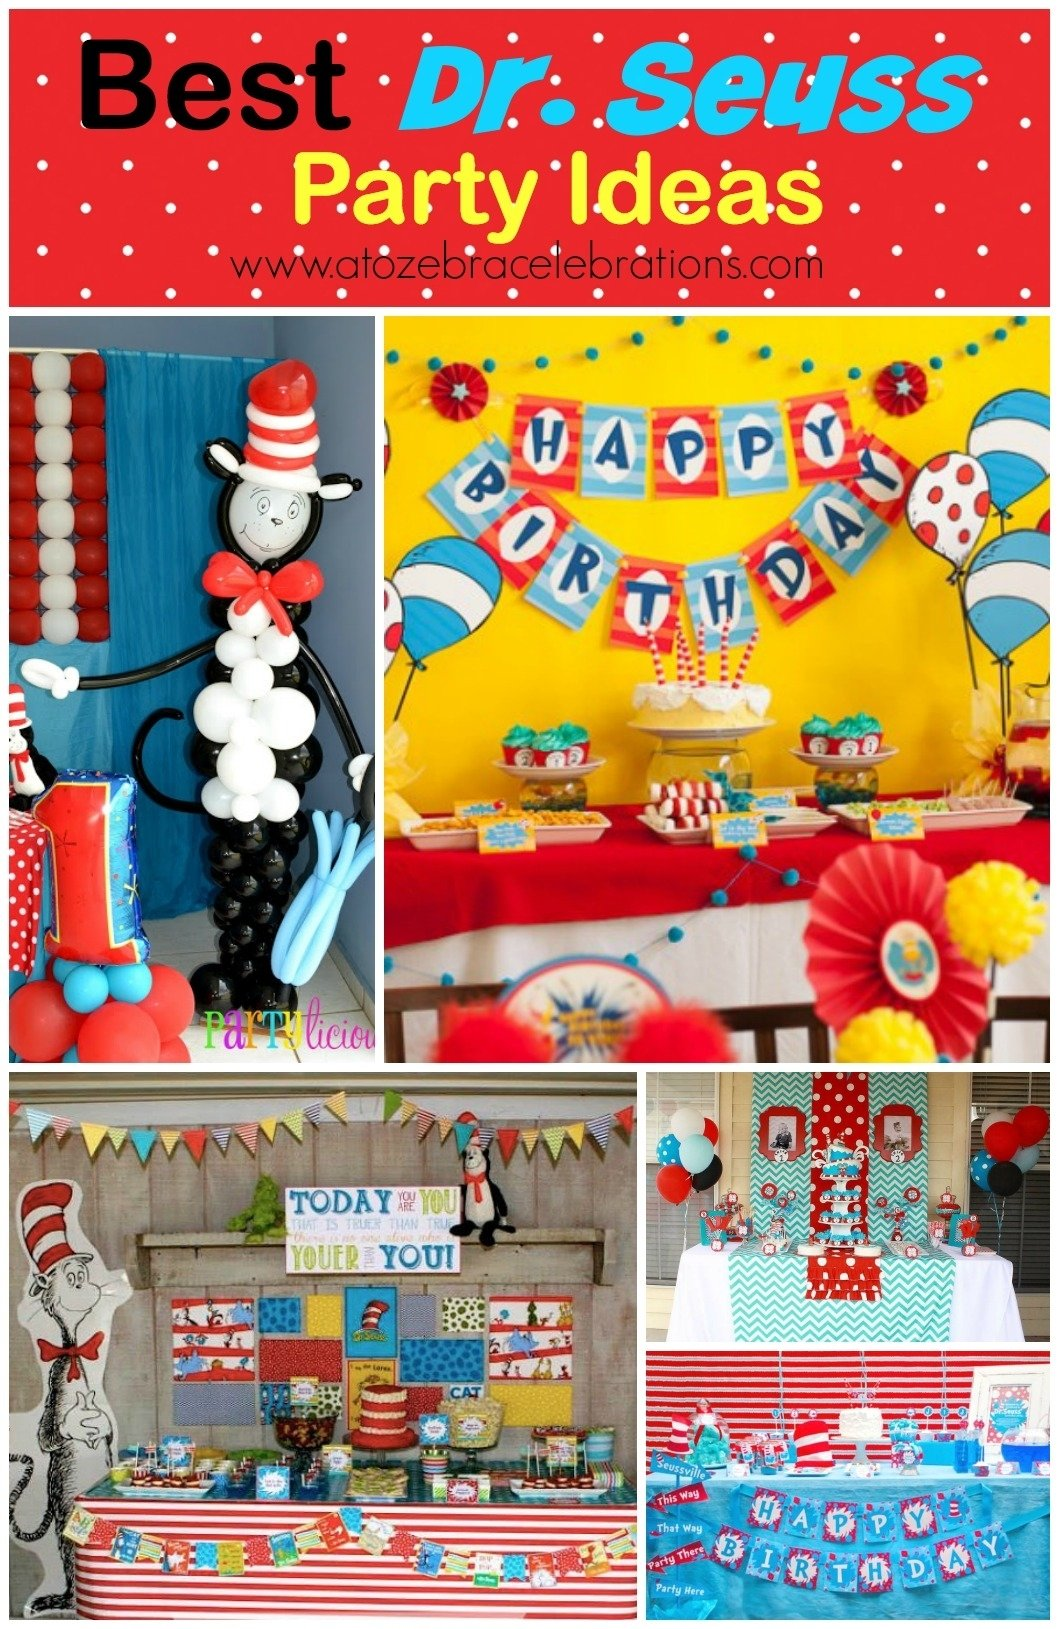 10 Nice Cat In The Hat Birthday Ideas dr seuss party ideas a to zebra celebrations 2020